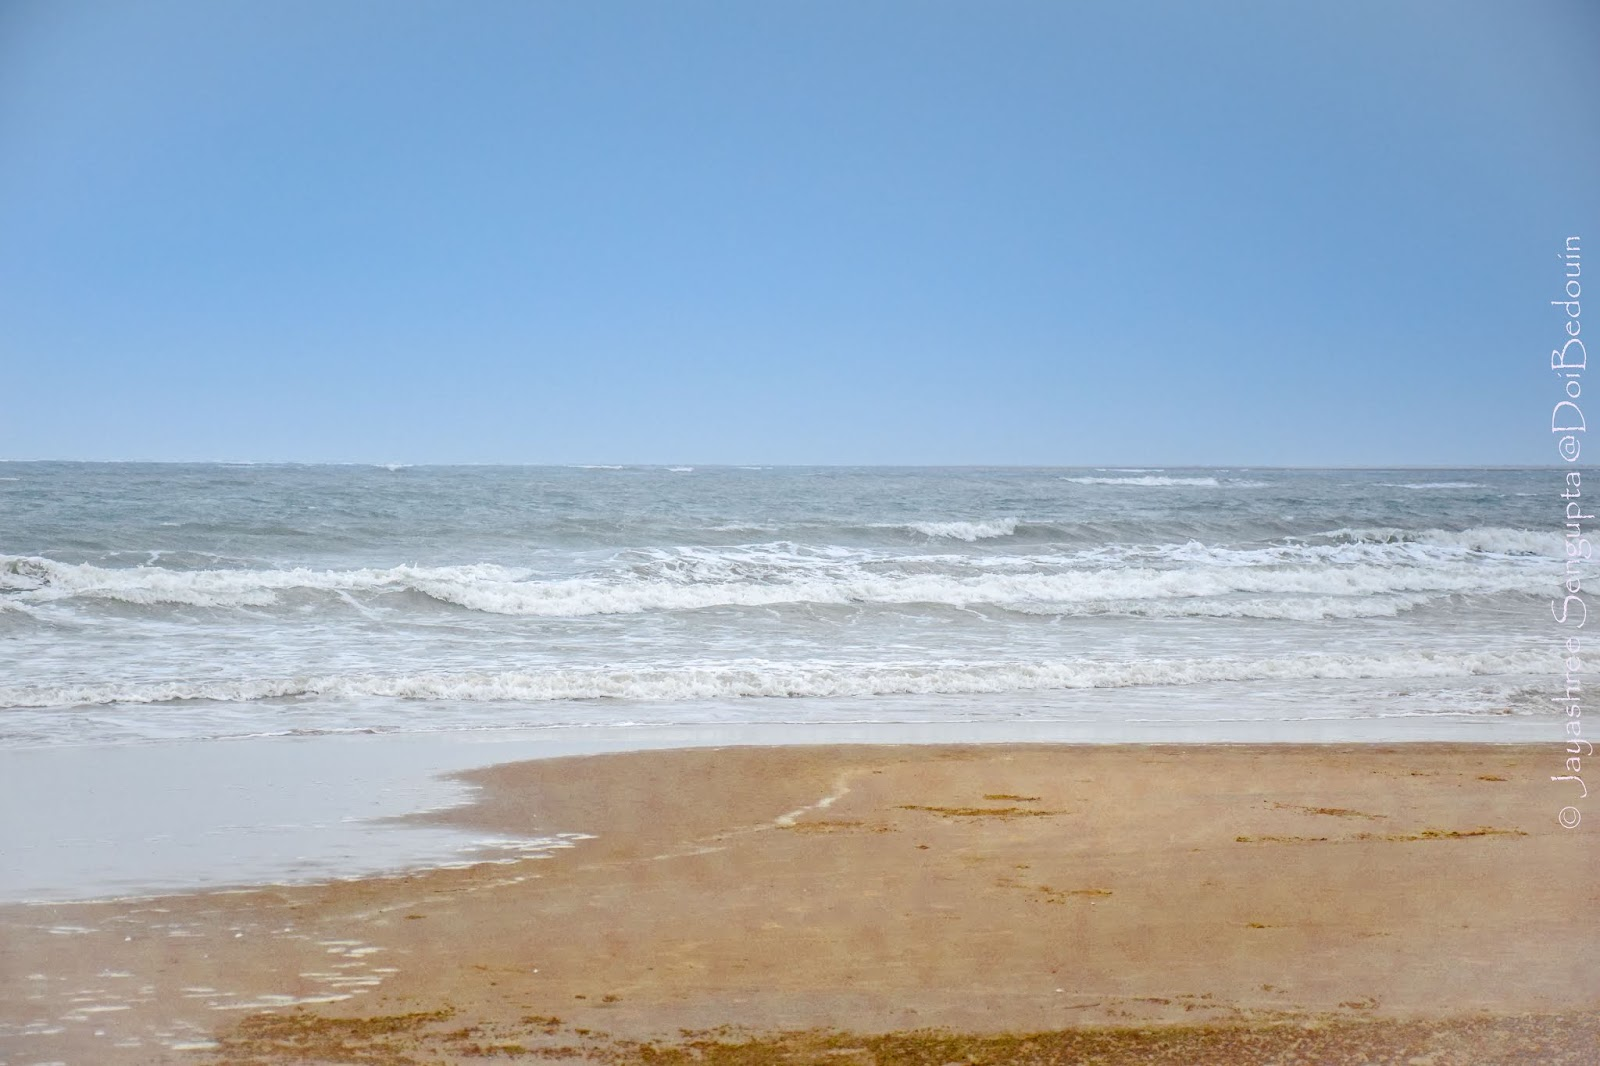 Say Hello to The Bay of Bengal and Detox Here at Talsari